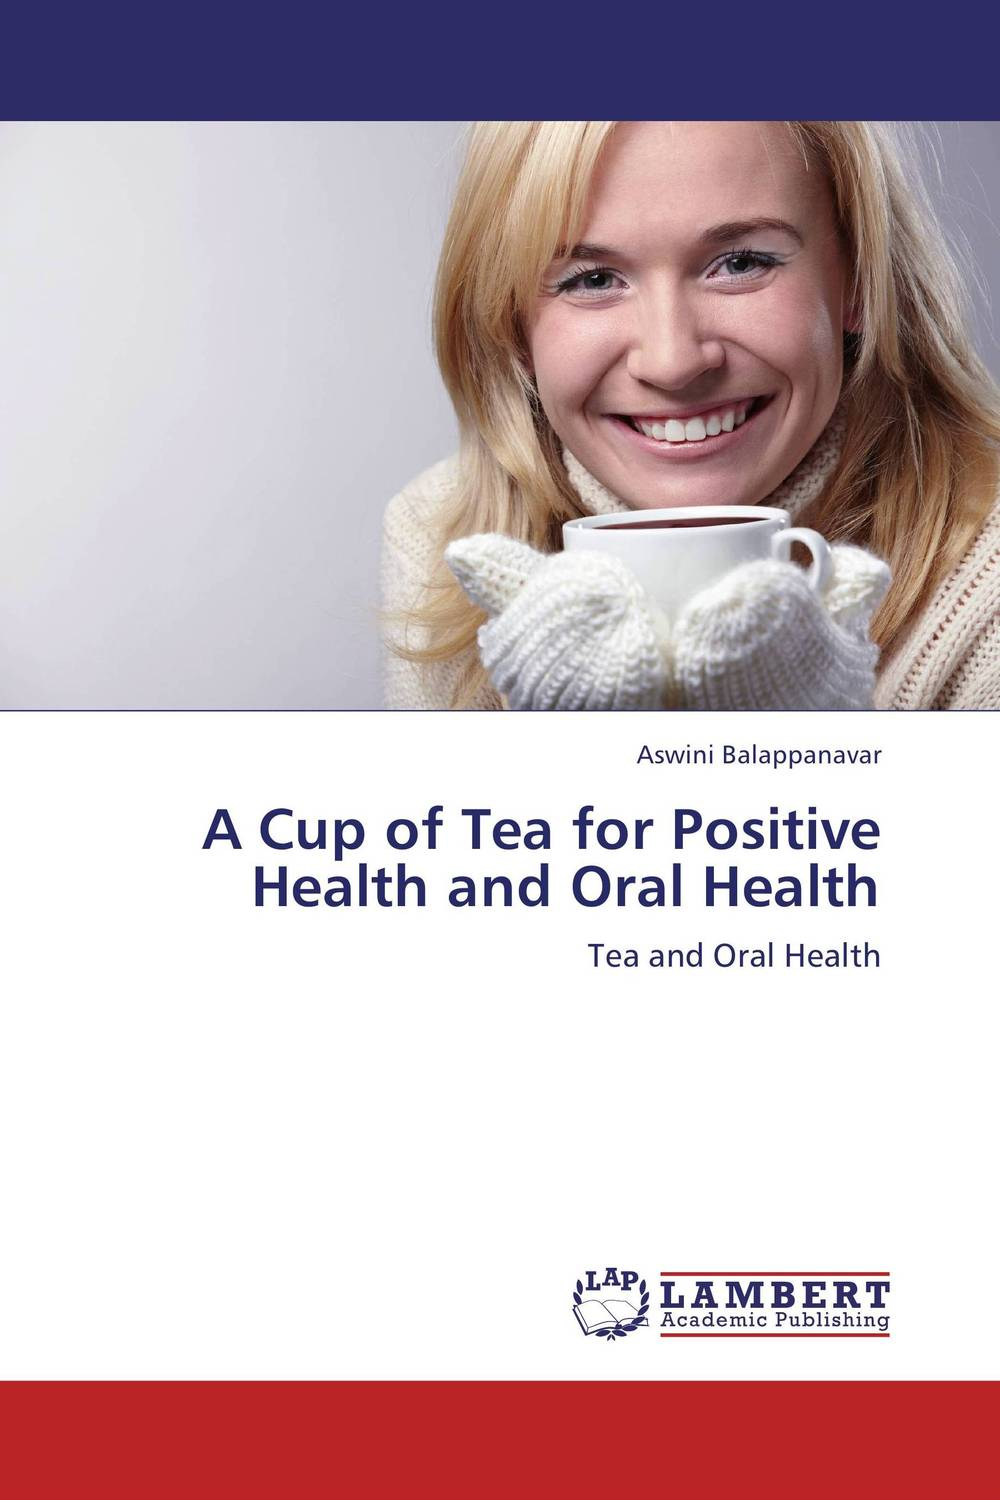 A Cup of Tea for Positive Health and Oral Health prostate health devices is prostate removal prostatitis mainly for the prostate health and prostatitis health capsule